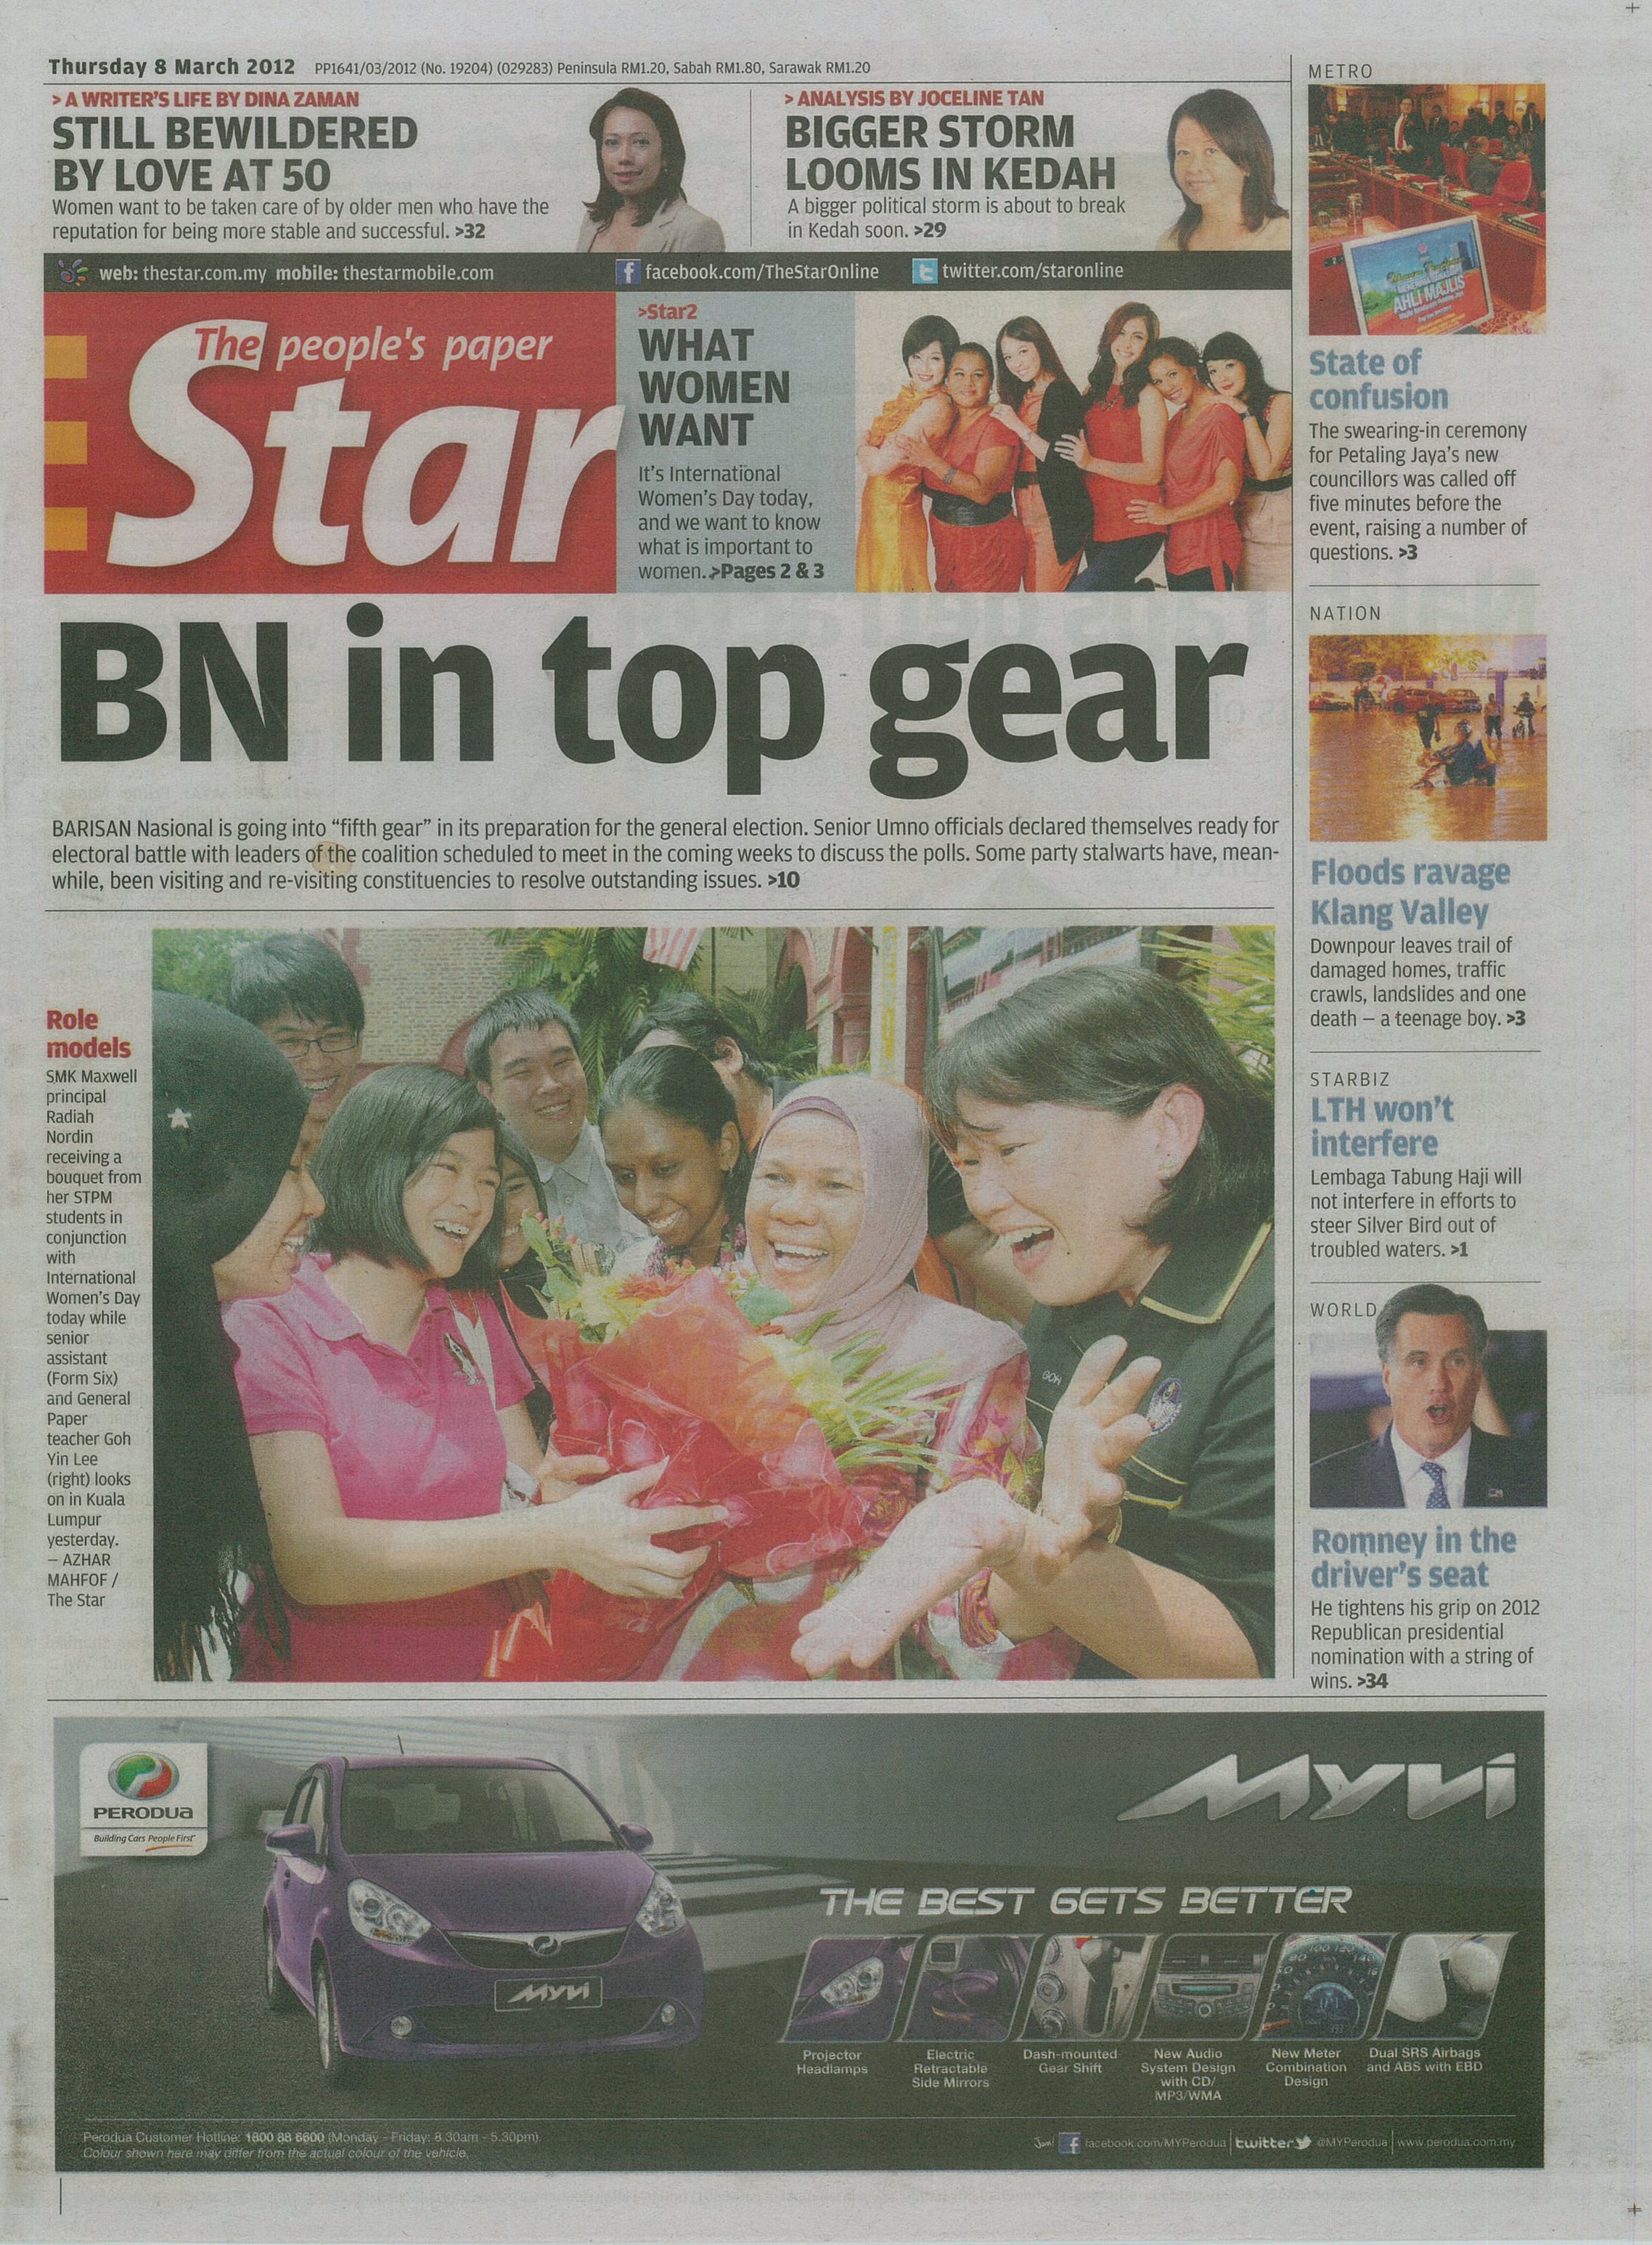 The Star - March